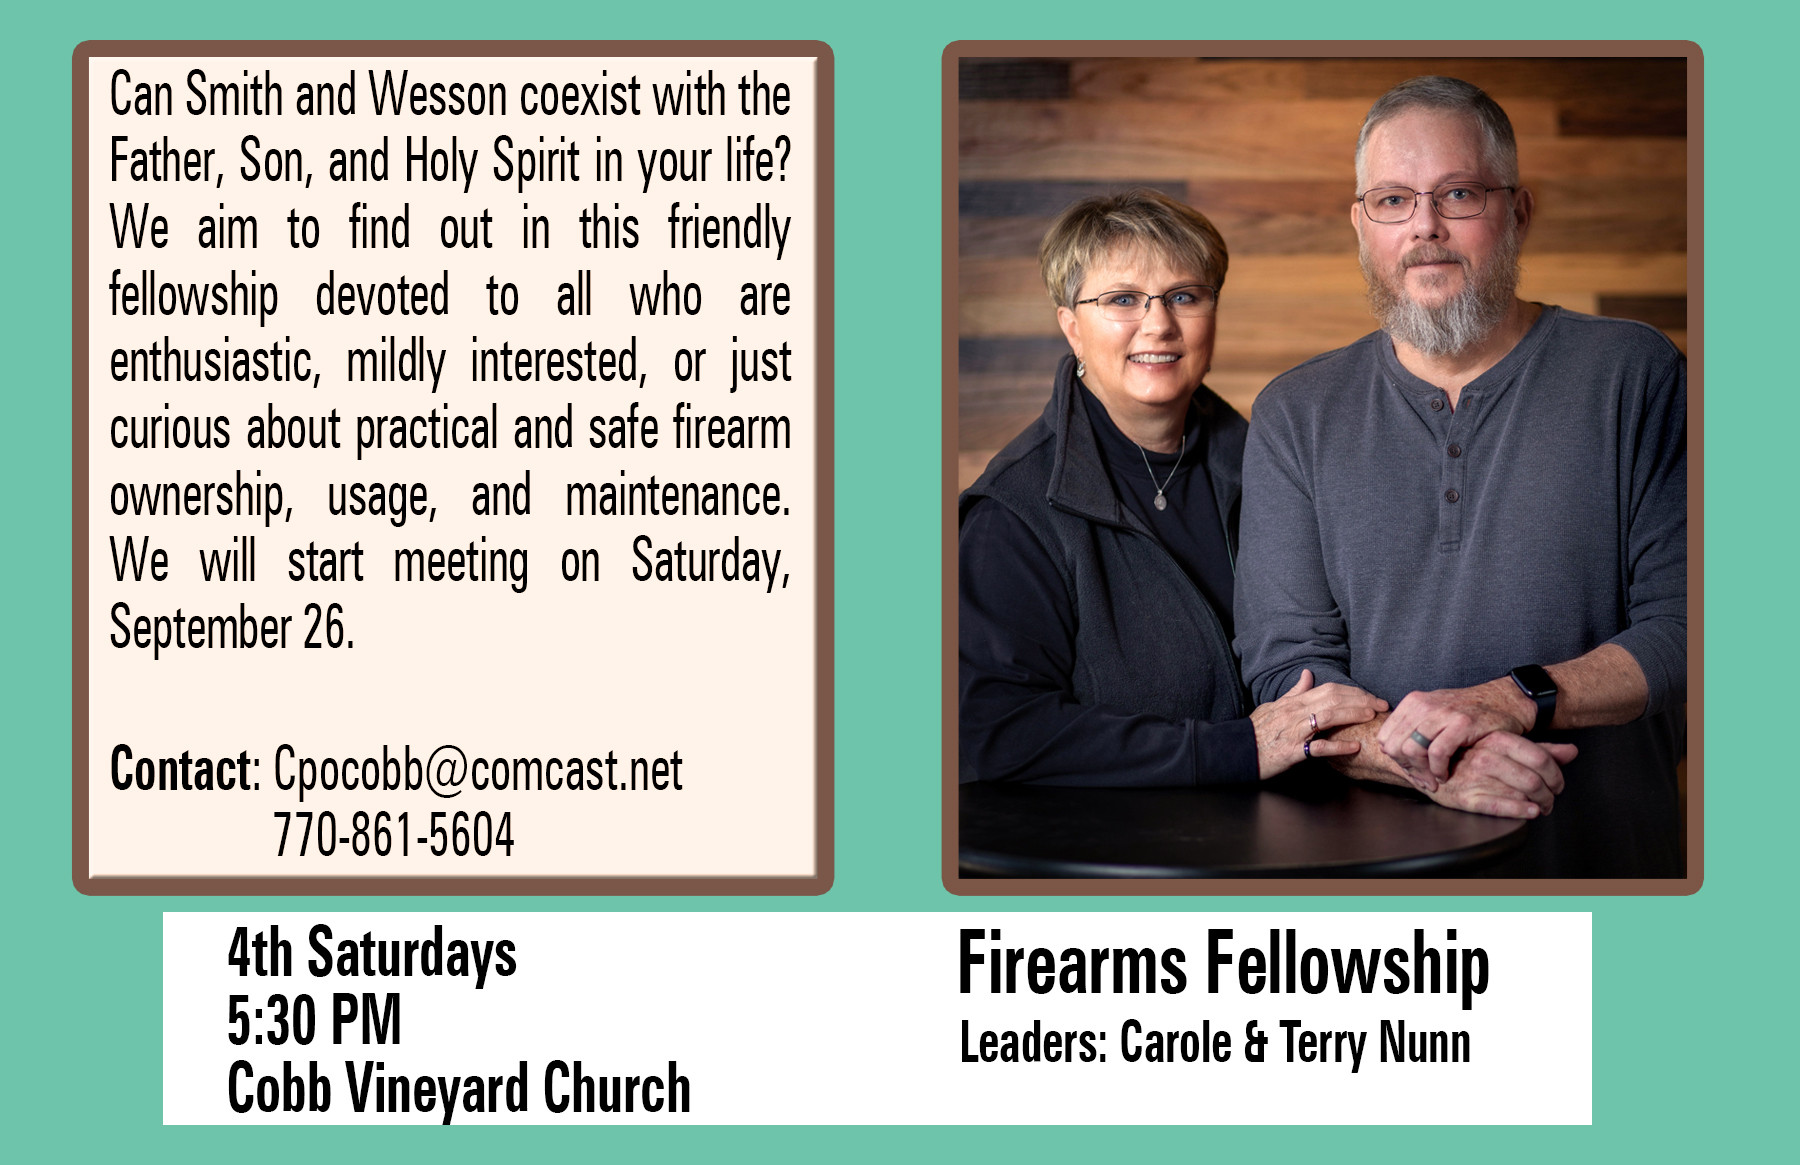 Firearms Fellowship Small Group Fall 202